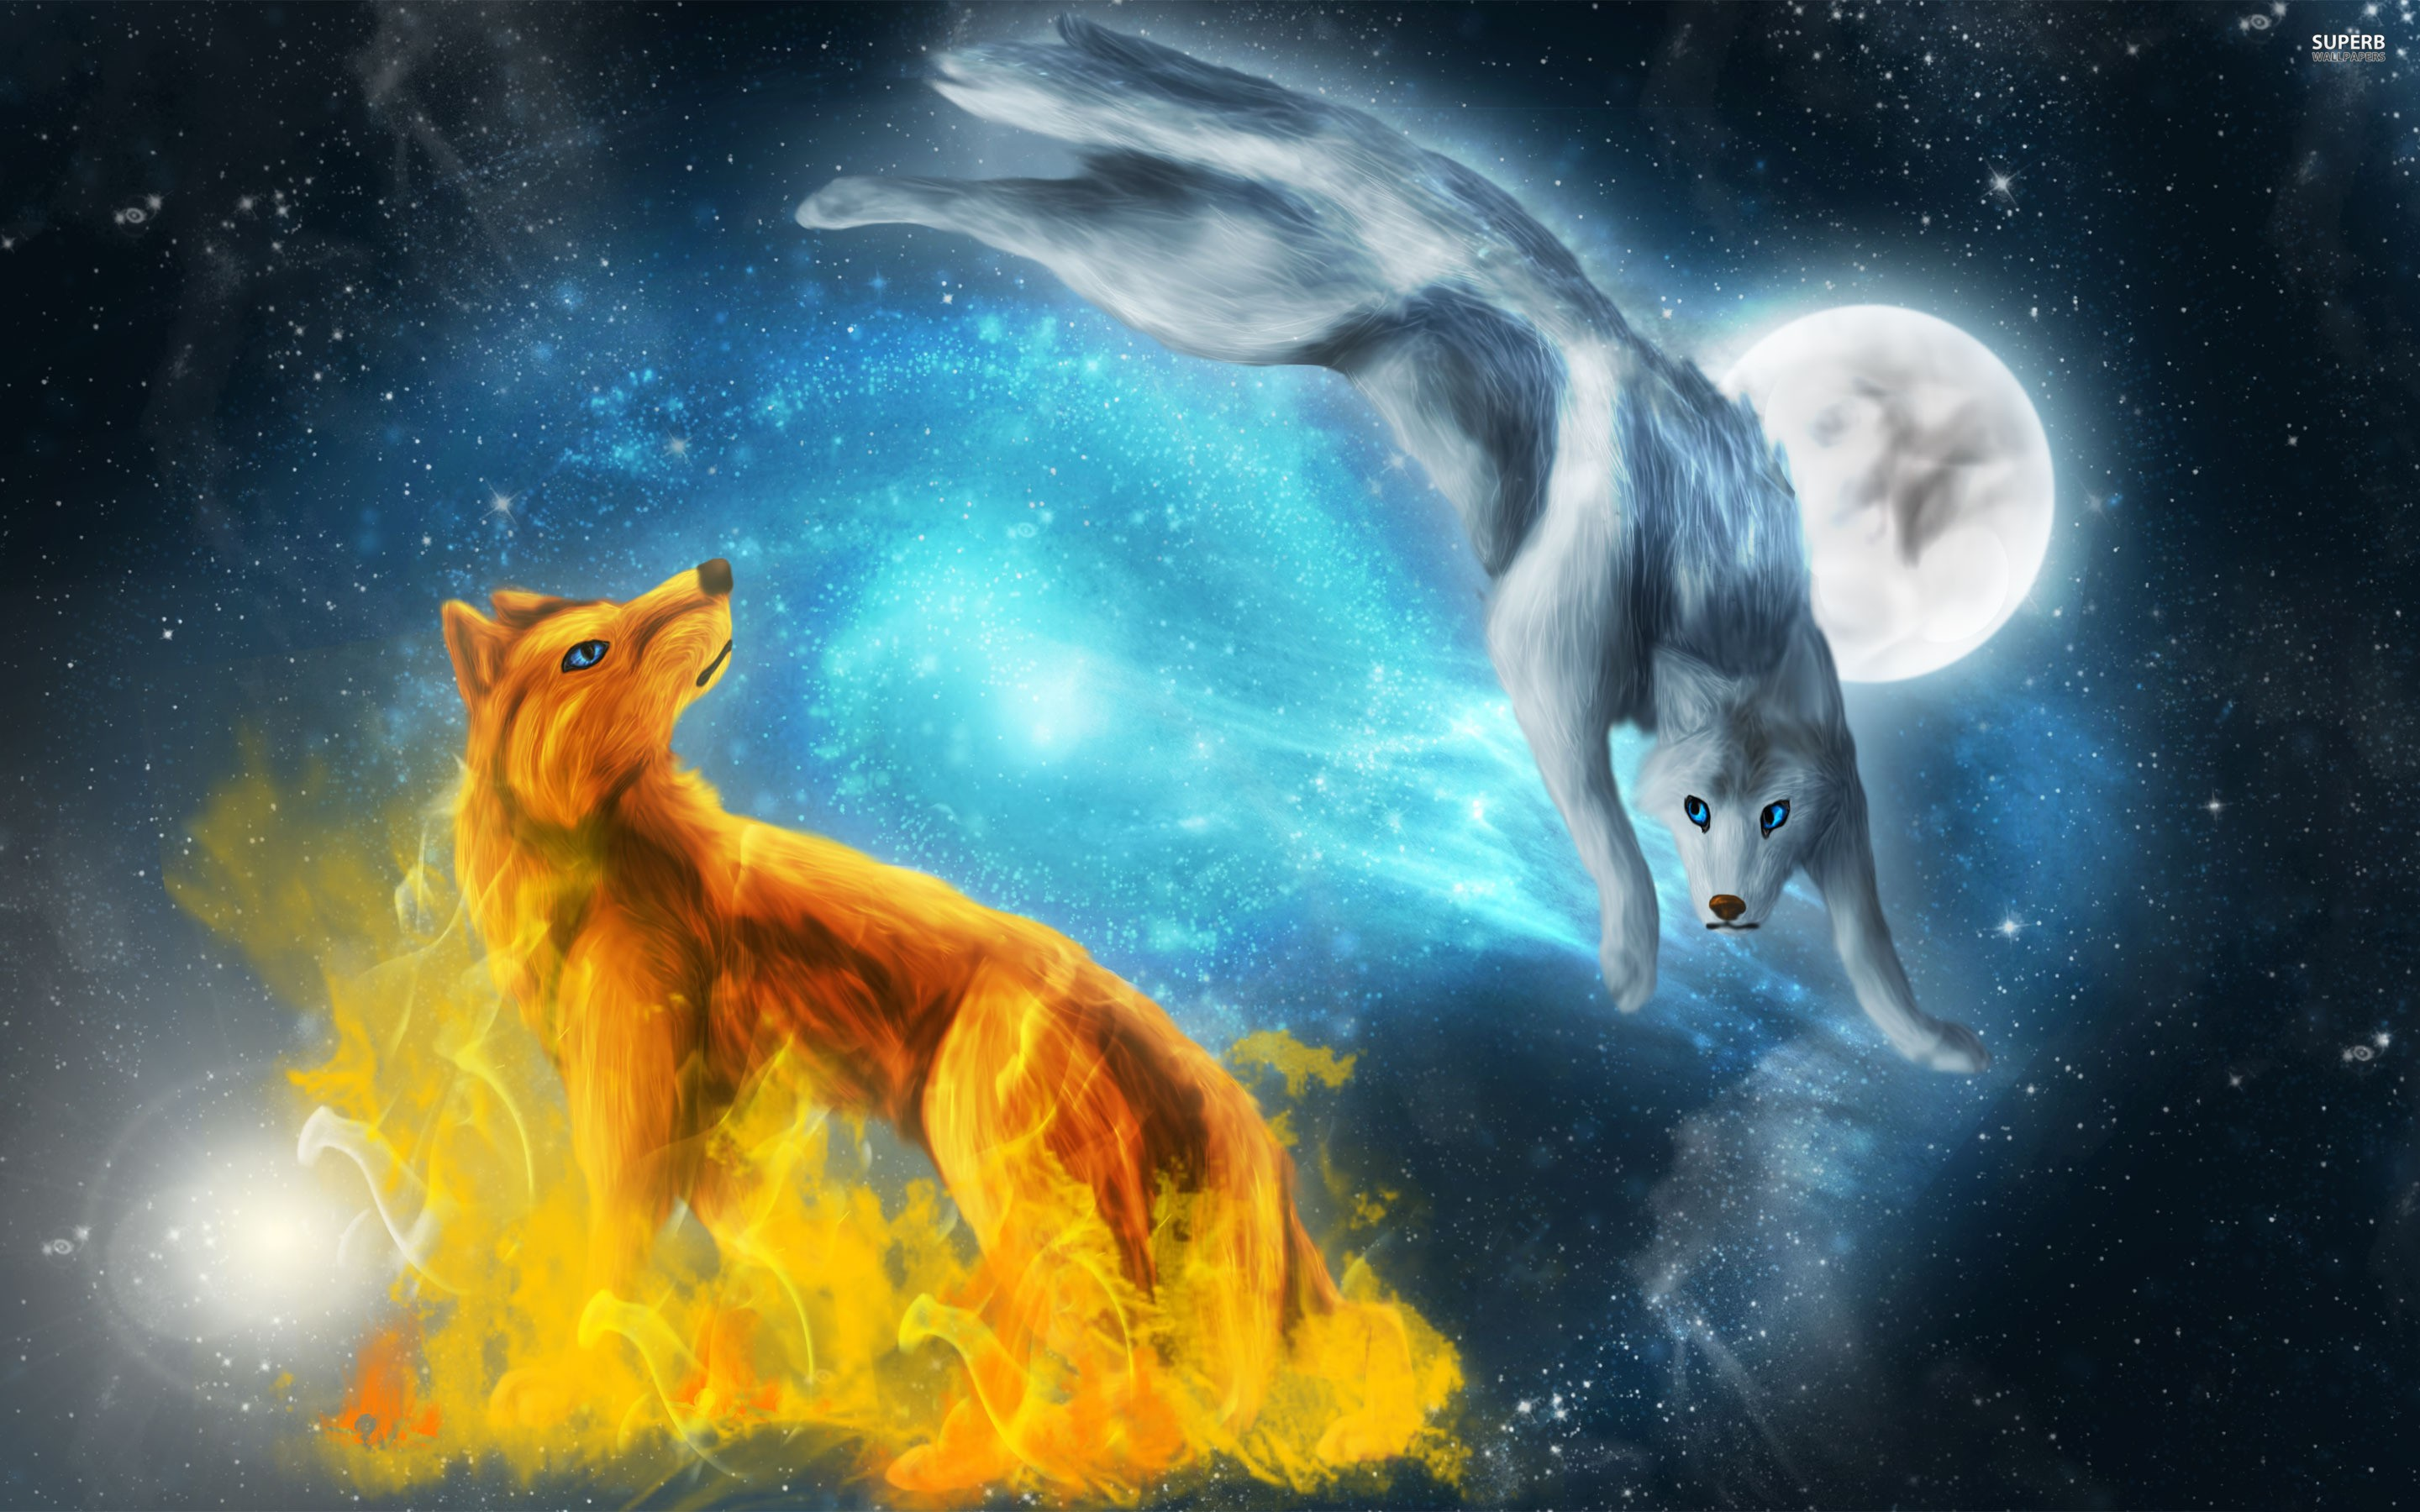 46+ Wolf wallpapers Download free stunning HD wallpapers